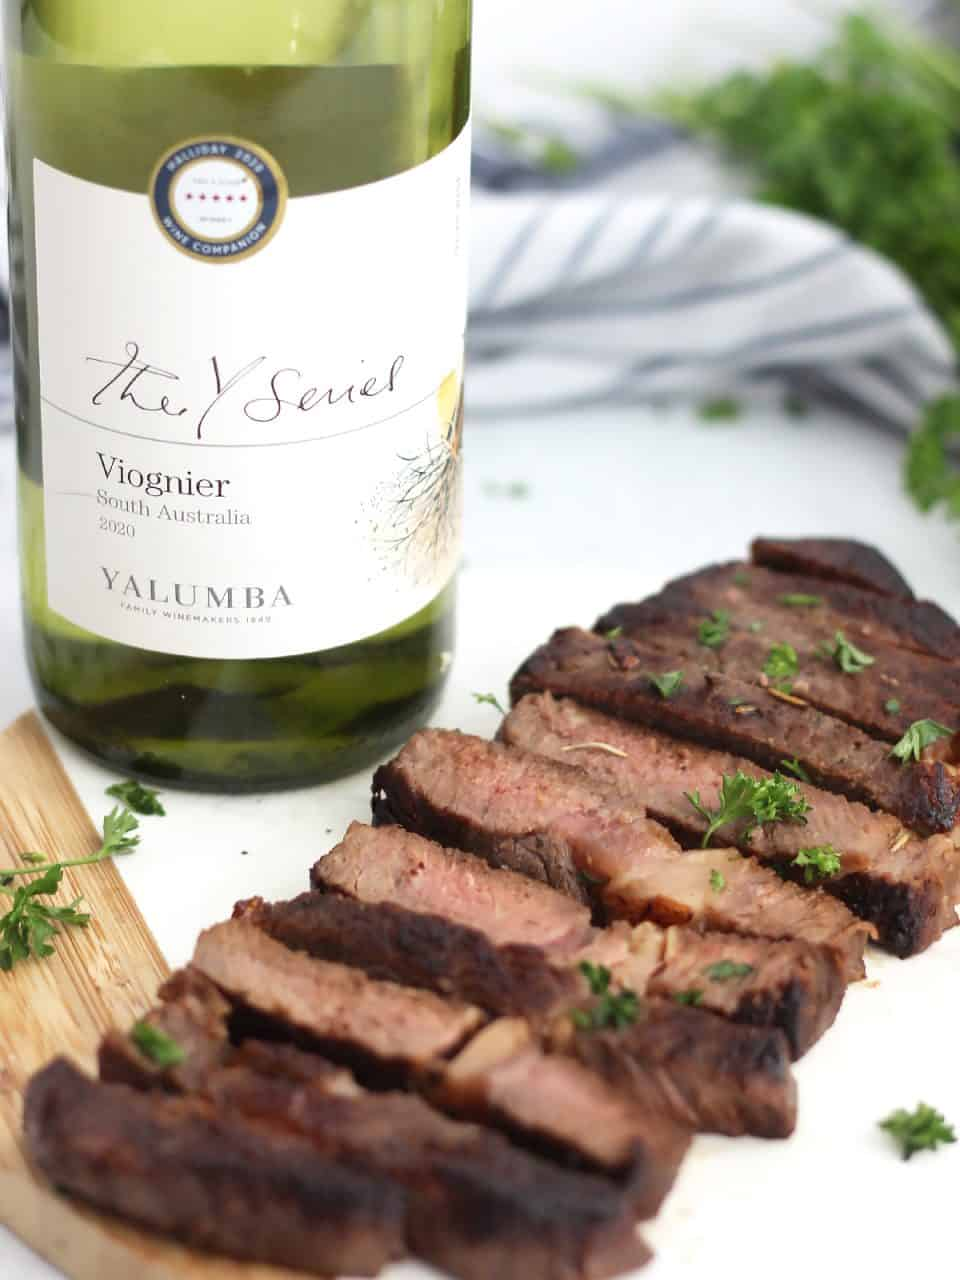 Slices of marinated steak on a chopping board in front of a bottle of white wine.